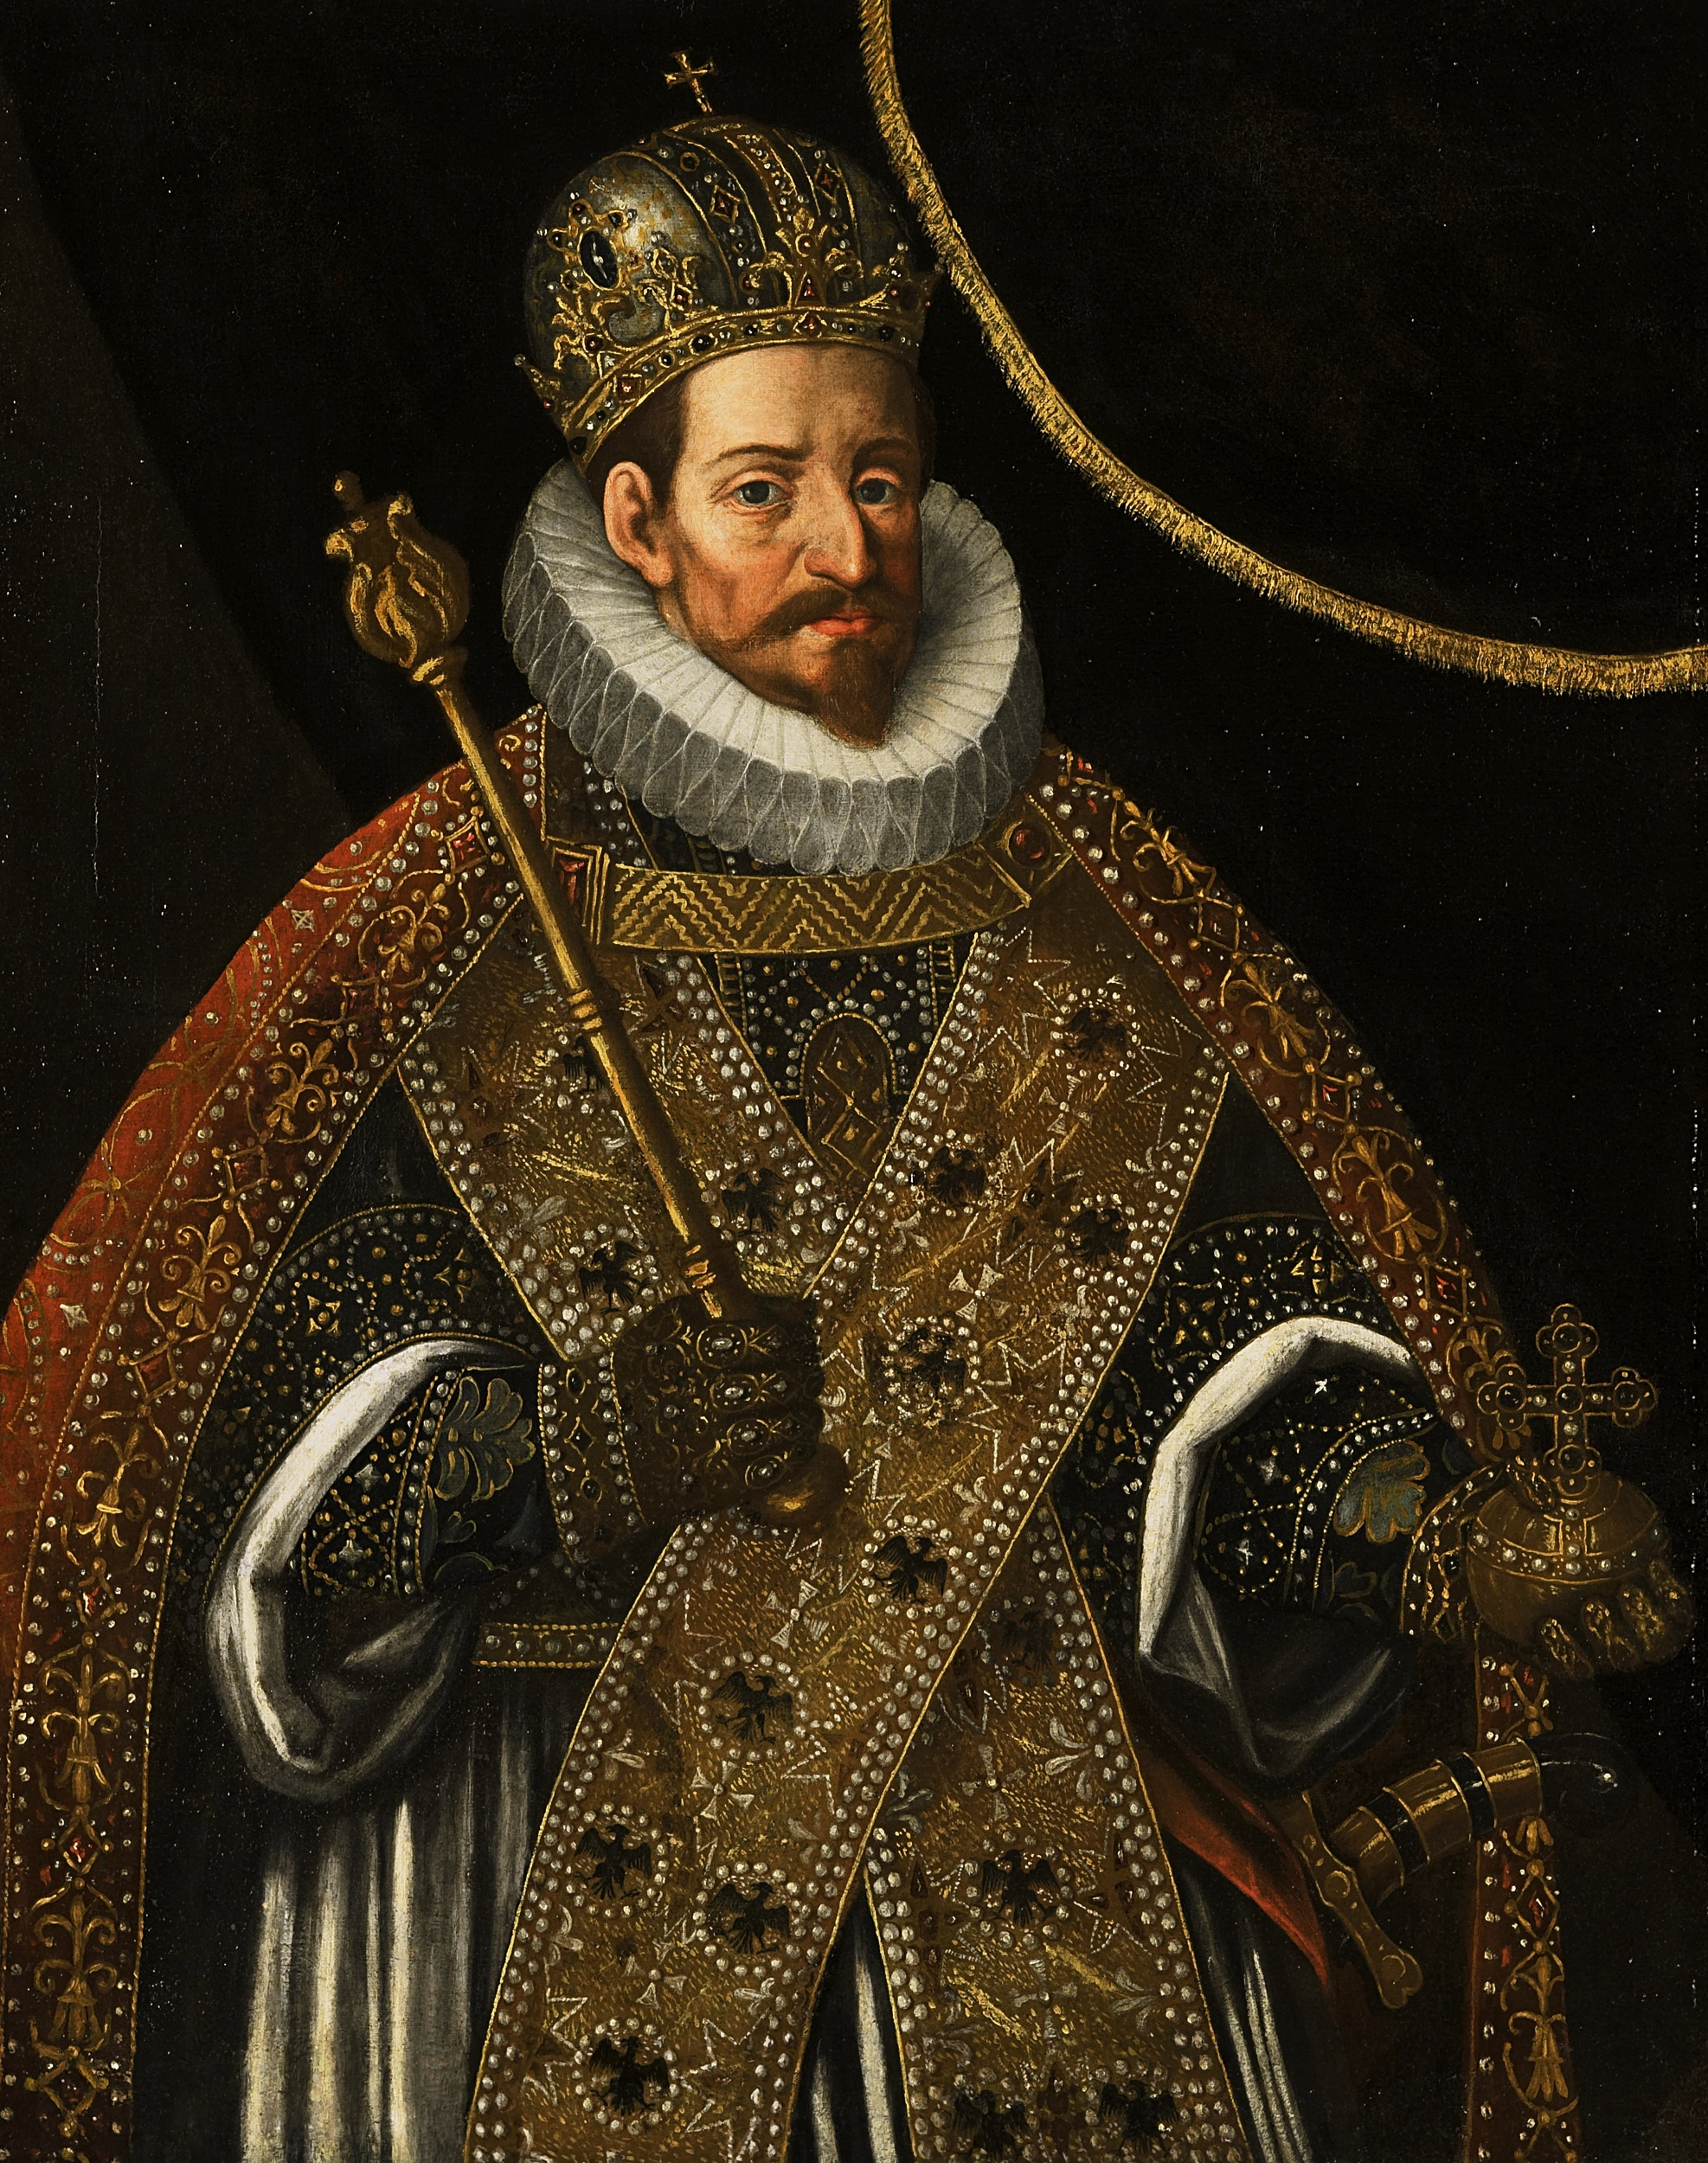 Matthias of Austria , (24 Feb 1557 – 20 Mar 1619) was  Holy Roman Emperor  from 1612, King of  Hungary  and  Croatia  from 1608 (as  Matthias II ) and King of  Bohemia  from 1611. He was a Catholic member of the  House of Habsburg .  He urged  György Thurzó  to execute Elizabeth not only for the horrid nature of her crimes, but also perhaps because of a large debt owed to her and her husband Ferenc.